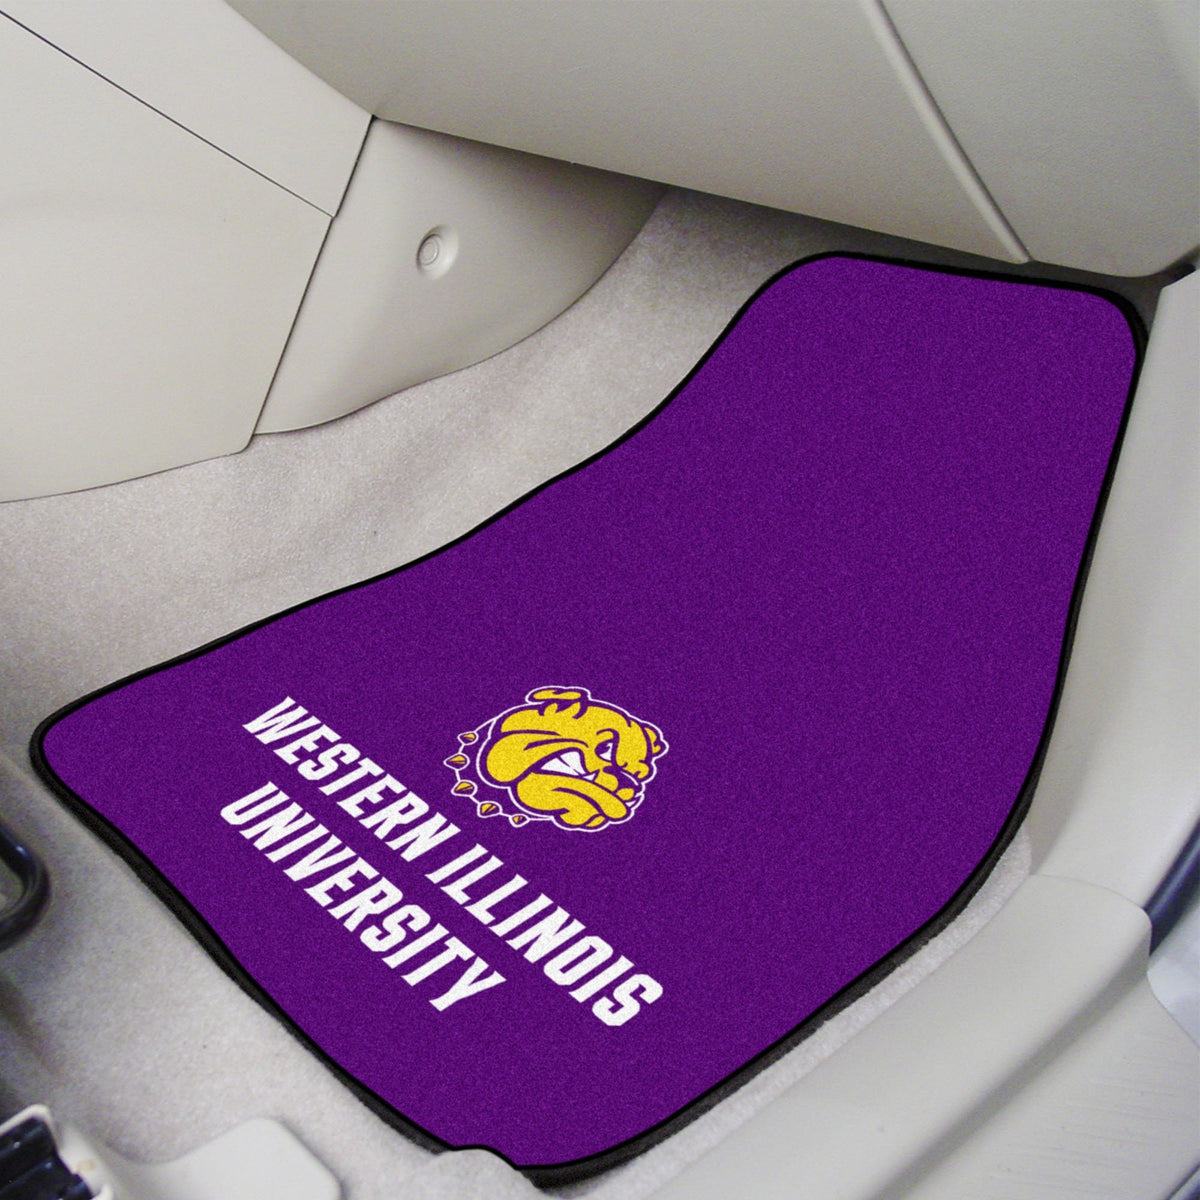 Collegiate - Carpet Car Mat, 2-Piece Set: T - Z Collegiate Car Mat, Front Car Mats, 2-pc Carpet Car Mat Set, Collegiate, Auto Fan Mats Western Illinois